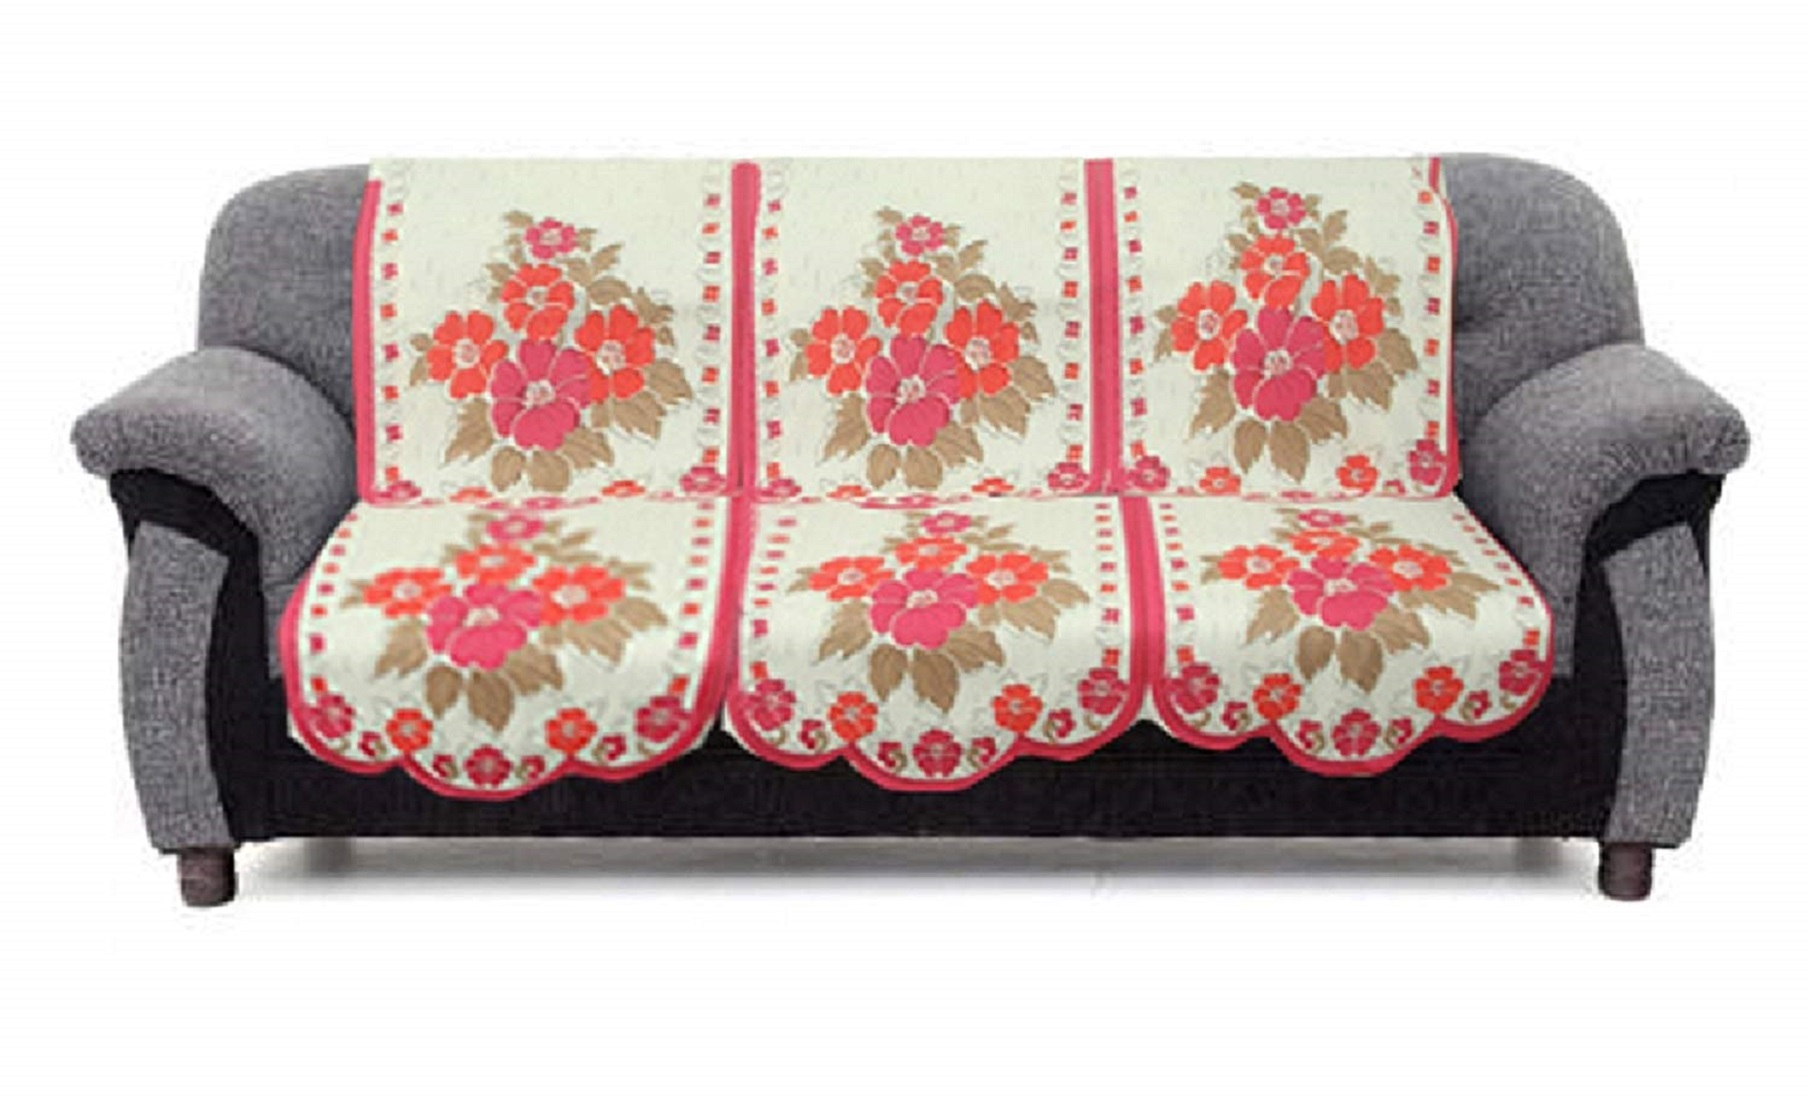 Amazing Kuber Industries Flower Cotton 2 Piece 3 Seater Sofa Cover Pink Cream Onthecornerstone Fun Painted Chair Ideas Images Onthecornerstoneorg